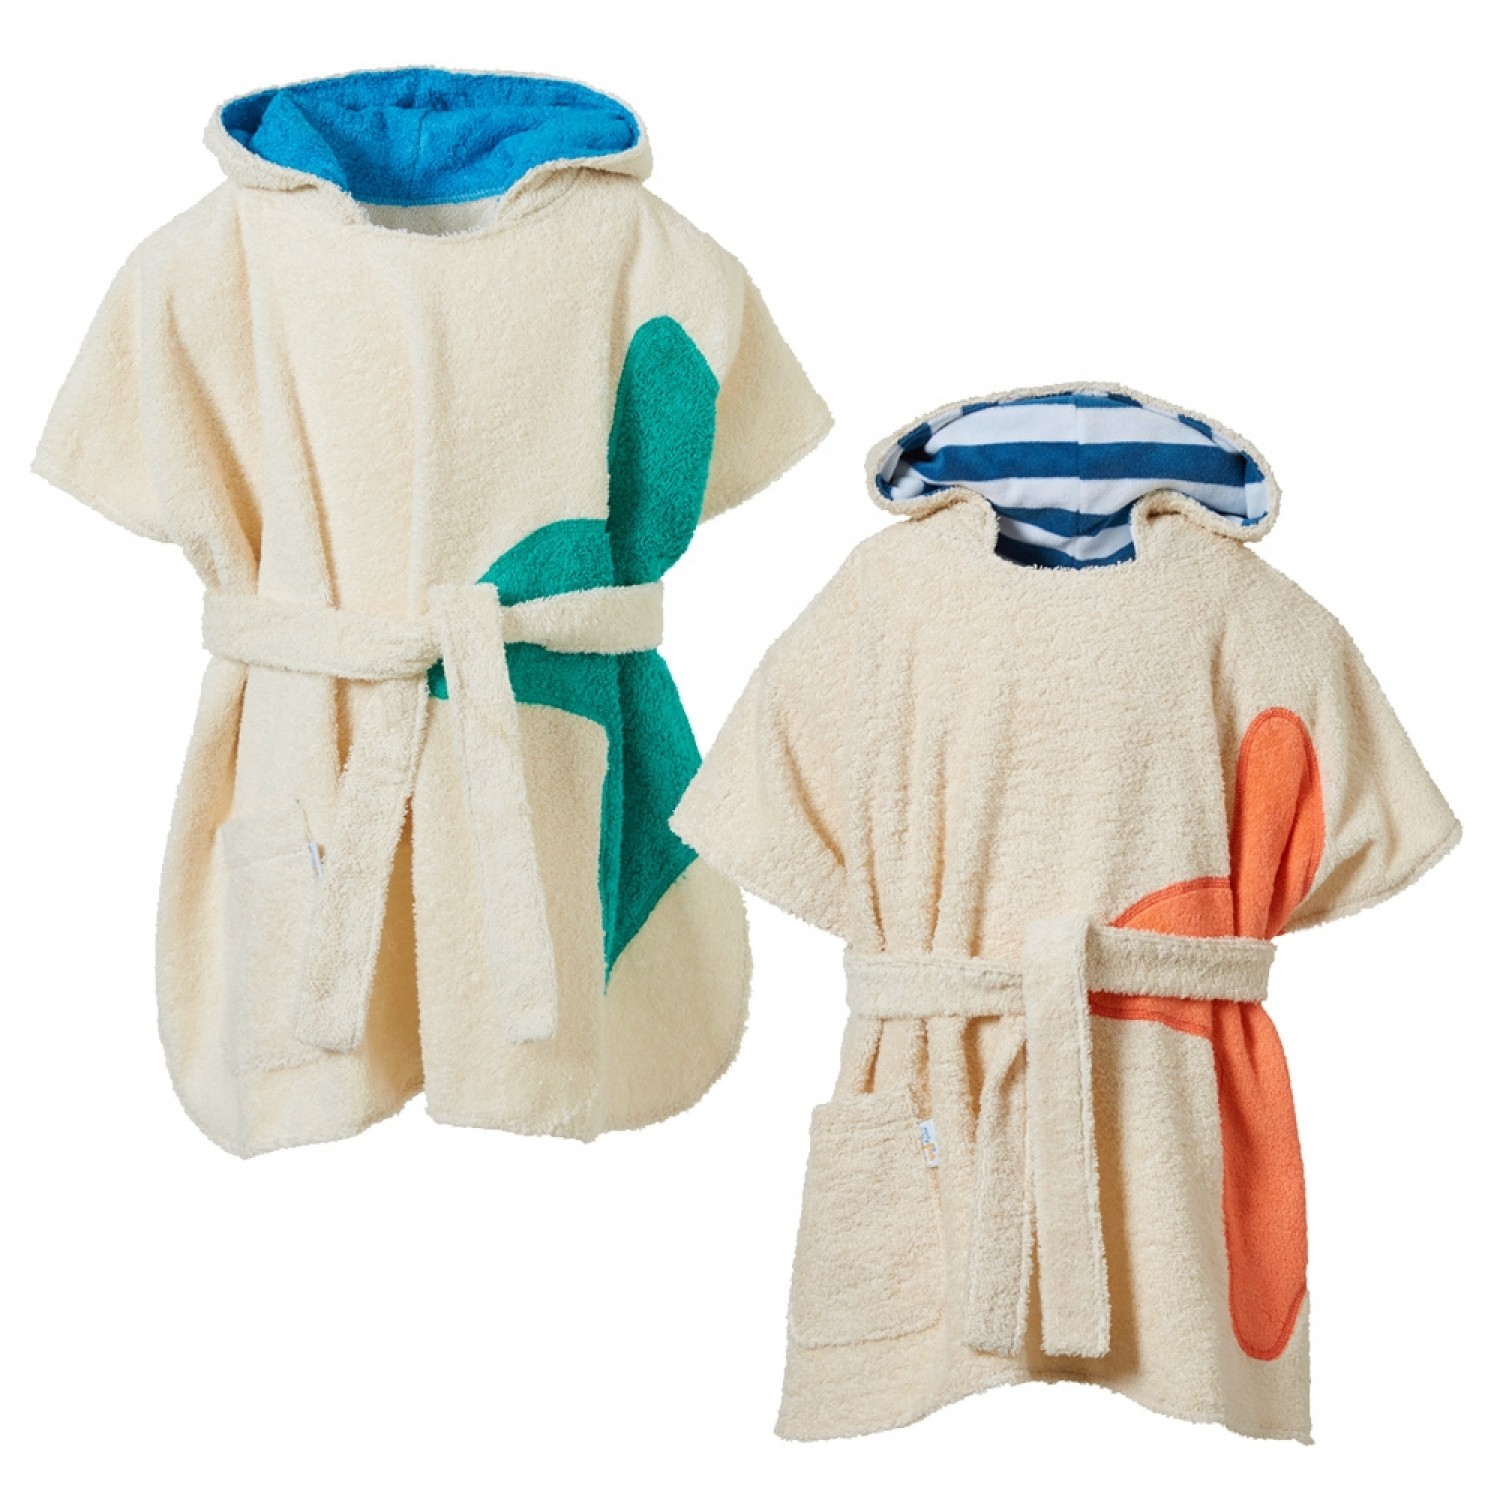 Eco Terrycloth Children's Bath Poncho with Hood | early fish